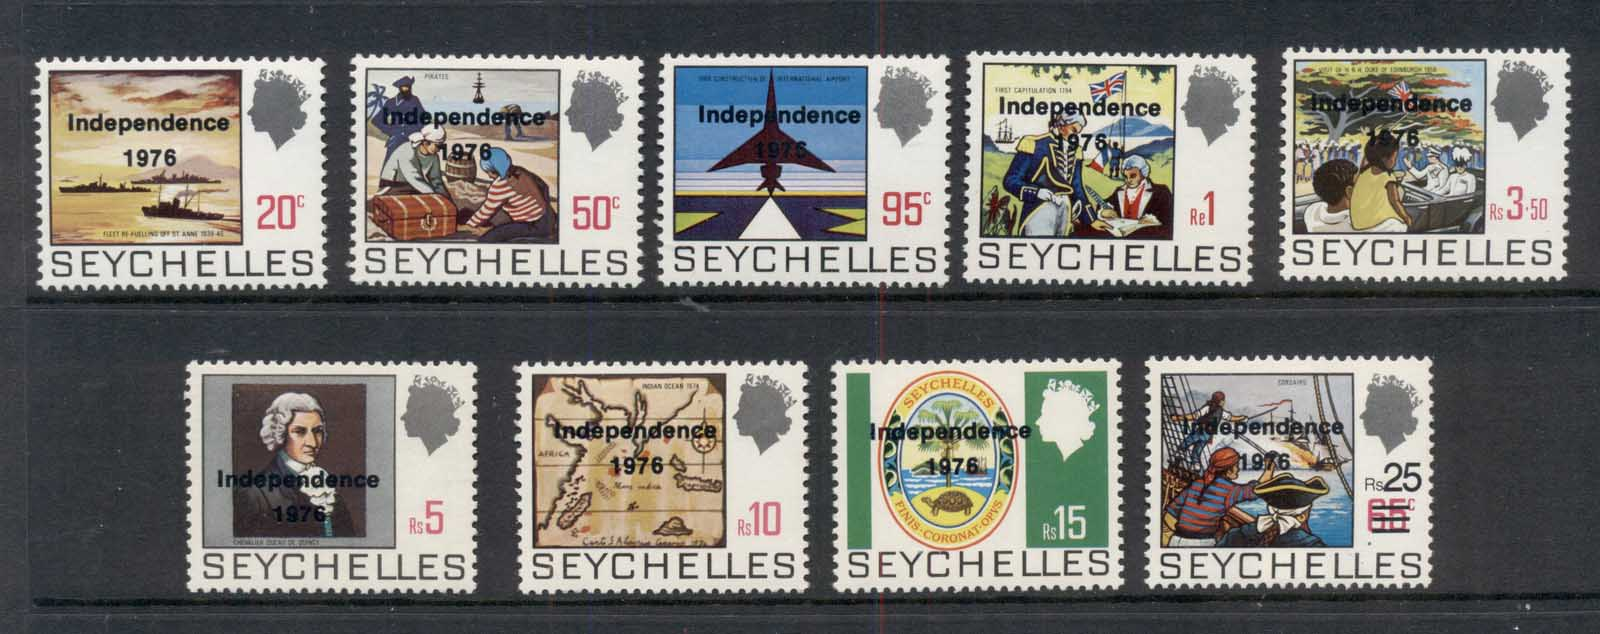 Seychelles 1976 Independence Opts MUH